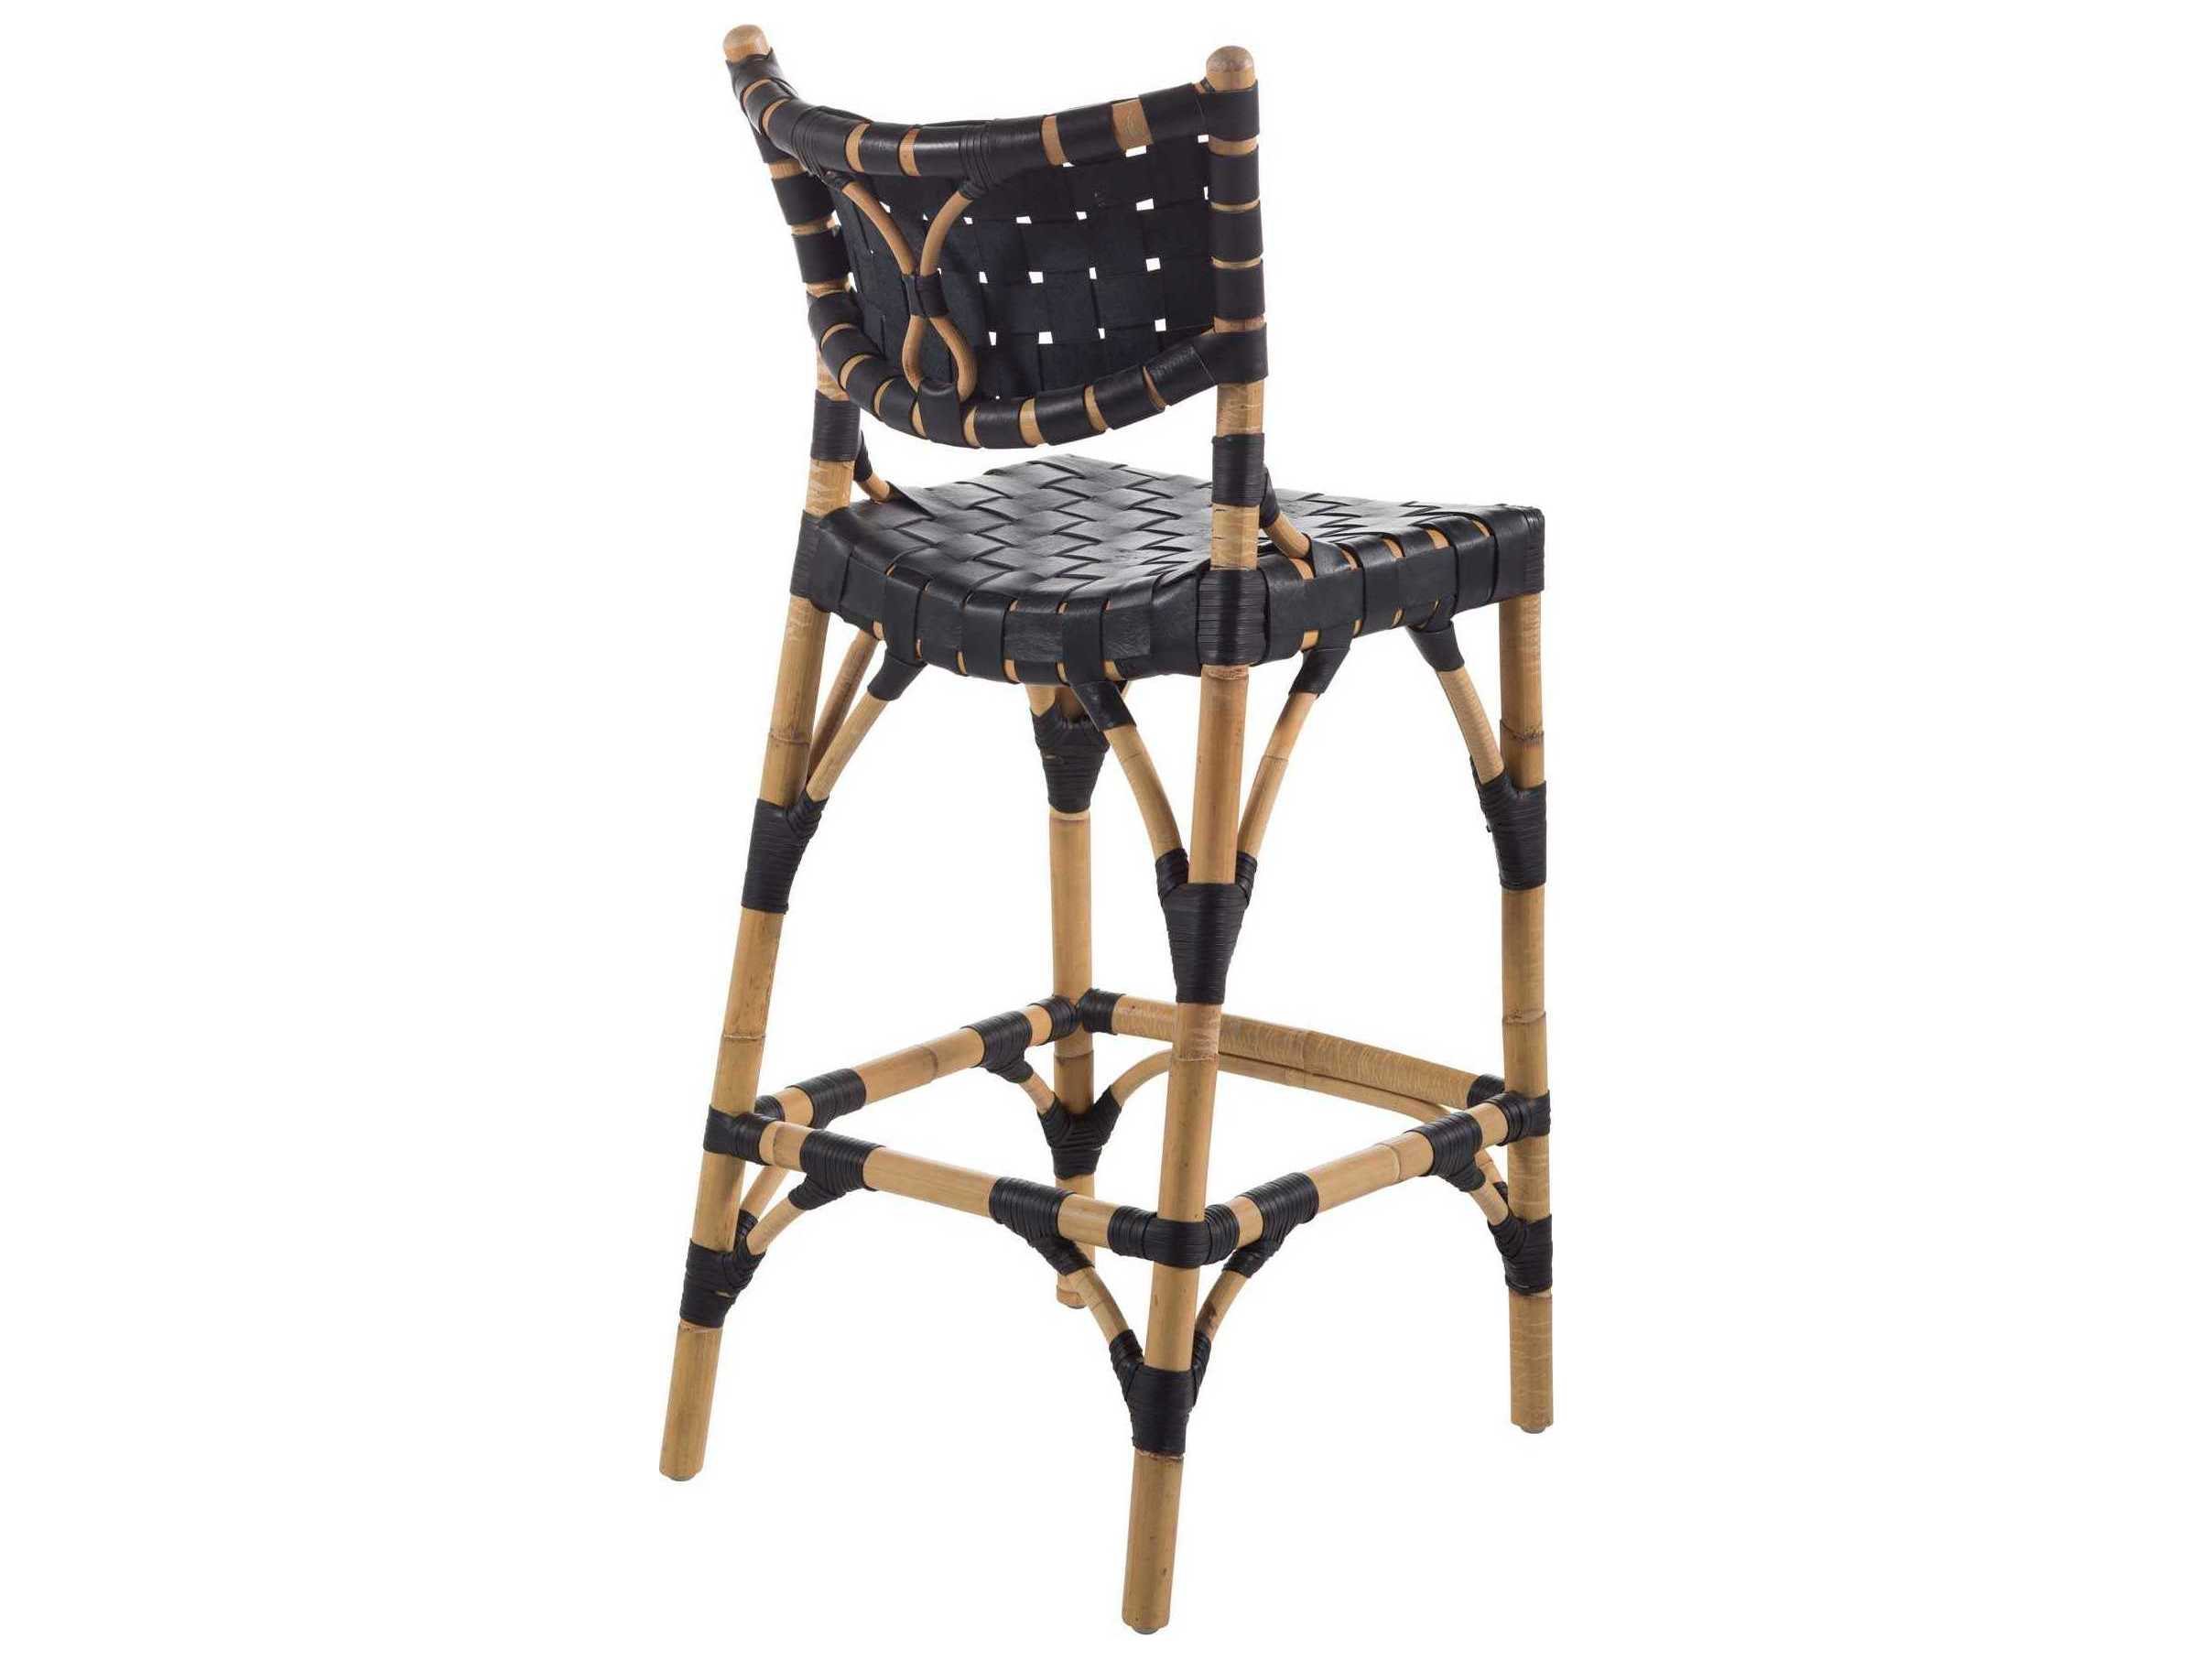 Peachy Gabby Home Morrison Black Leather Natural Rattan Side Counter Height Stool Evergreenethics Interior Chair Design Evergreenethicsorg